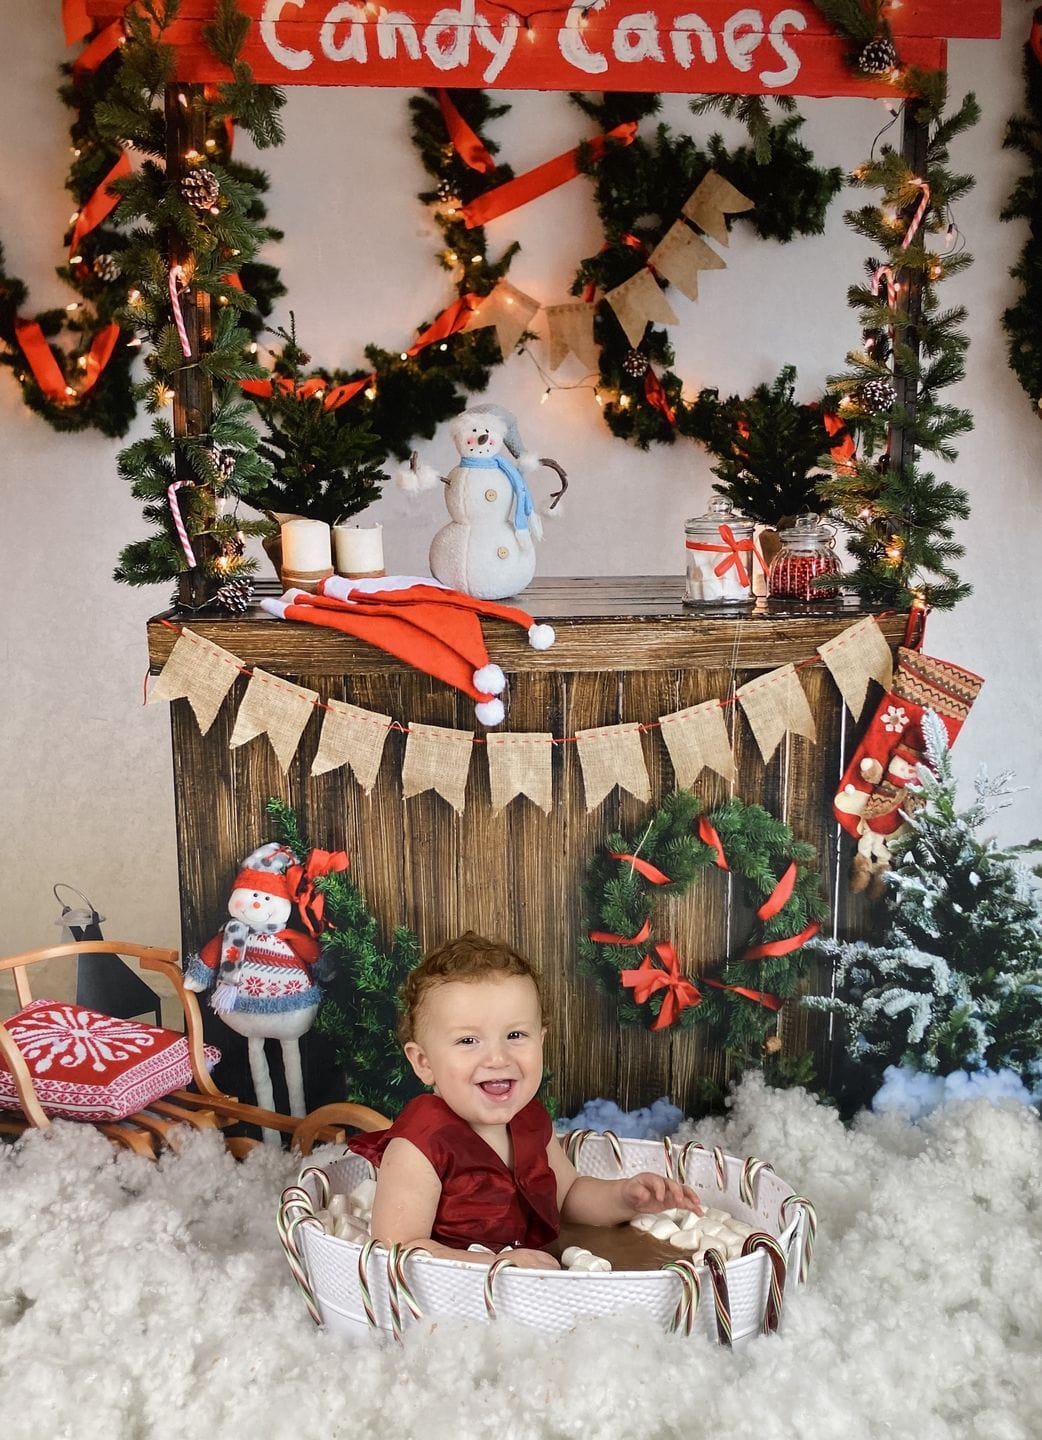 Load image into Gallery viewer, Kate Christmas Candy Canes Children Backdrop for Photography